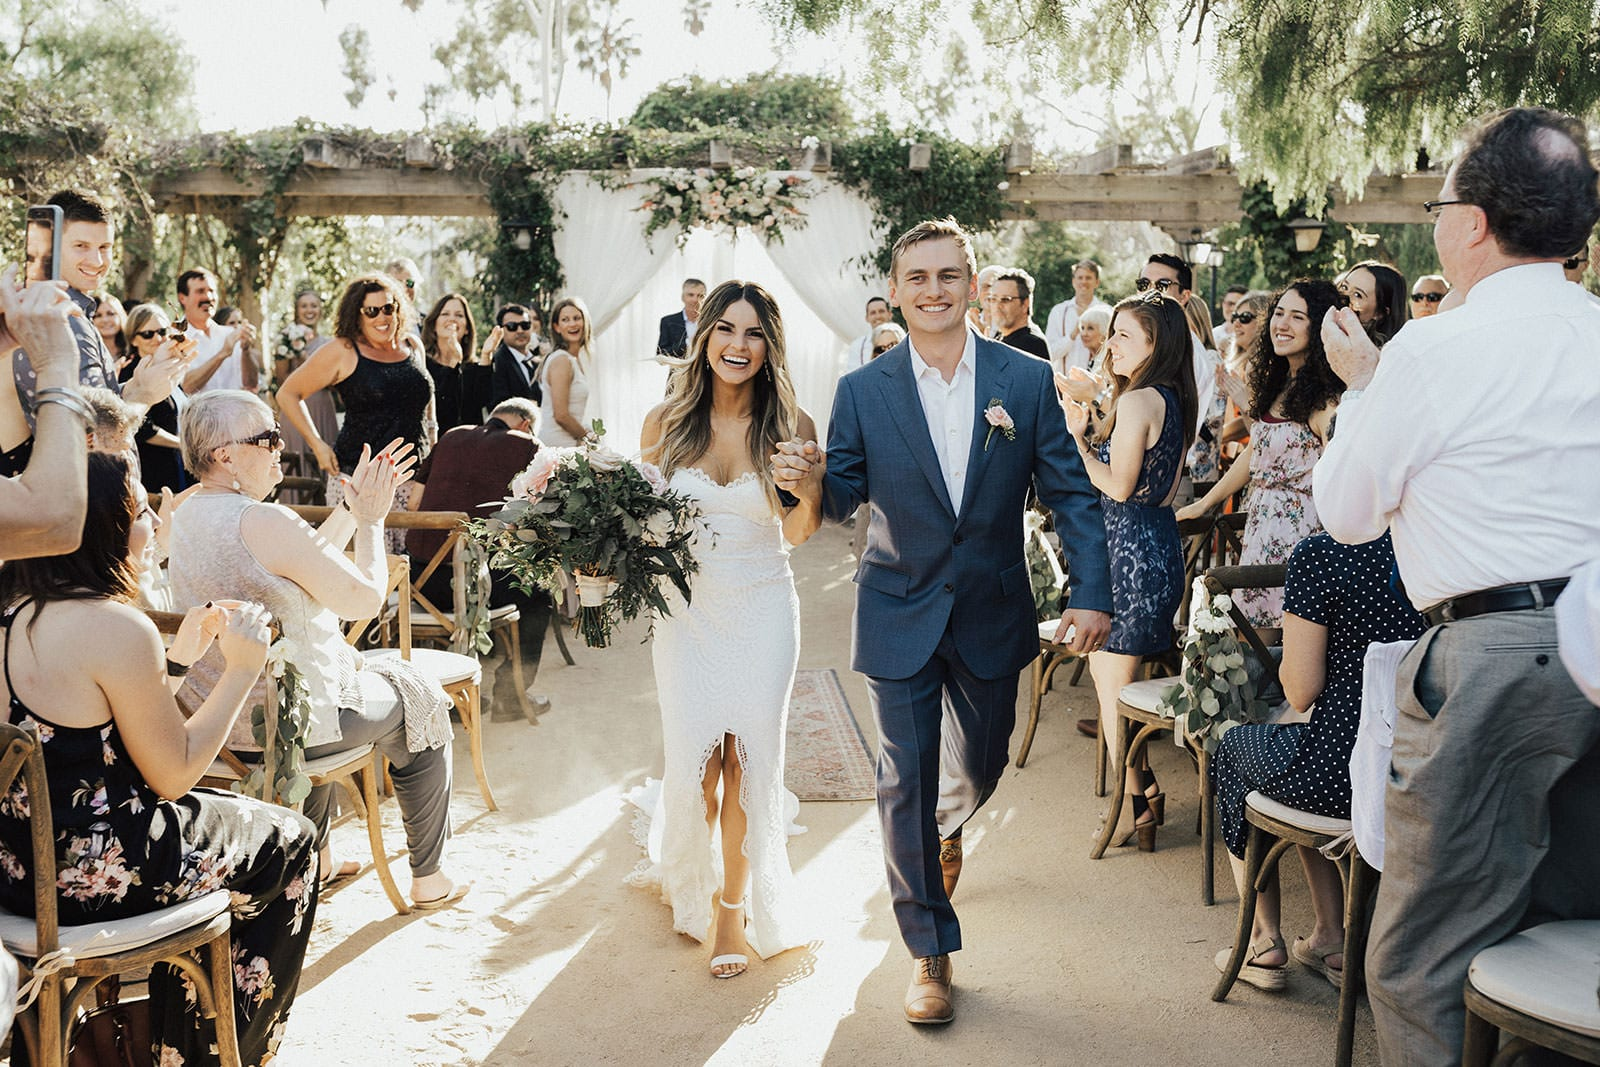 Blonde bride wearing Grace Loves Lace Paloma Gown holding bouquet walking down aisle with groom